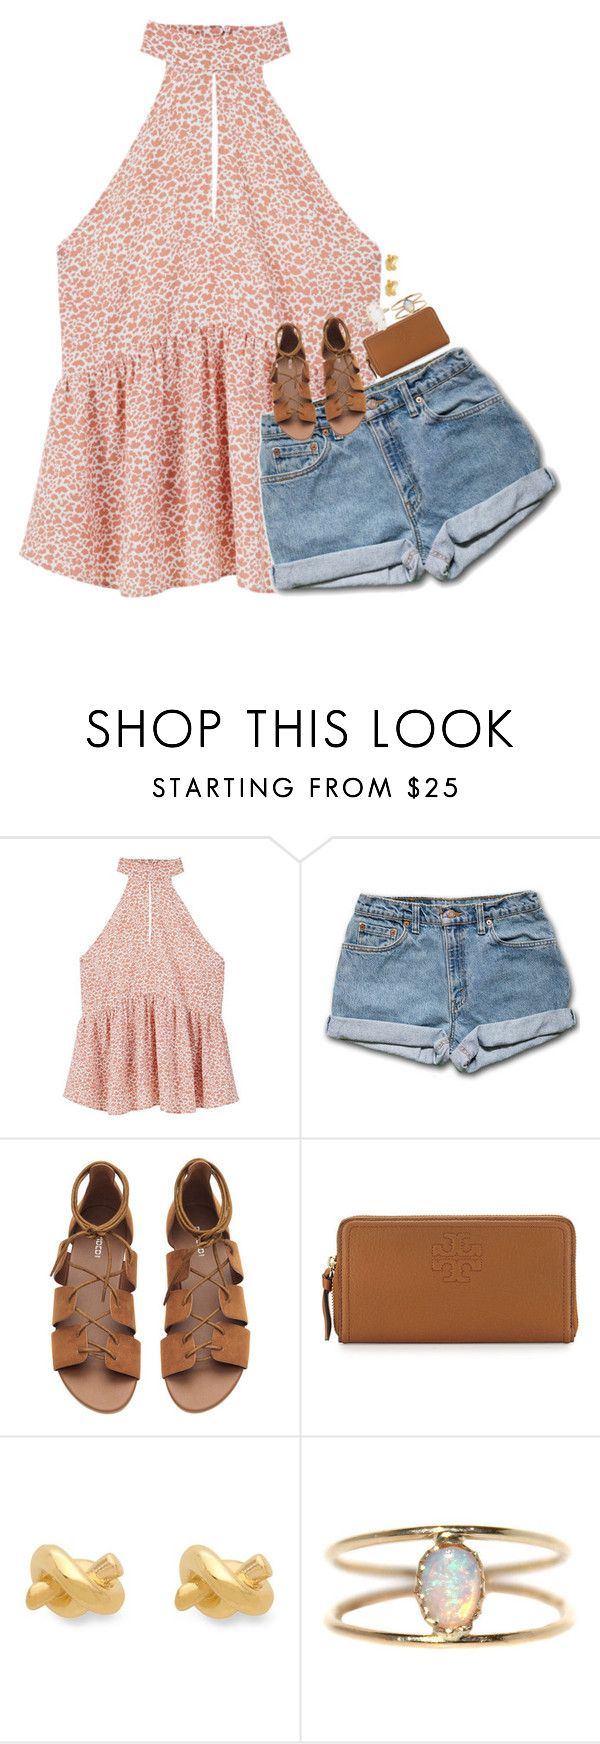 """church camp in 2 days!"" by hmcdaniel01 ❤ liked on Polyvore featuring MANGO, Tory Burch, Kate Spade, LUMO and Kendra Scott"